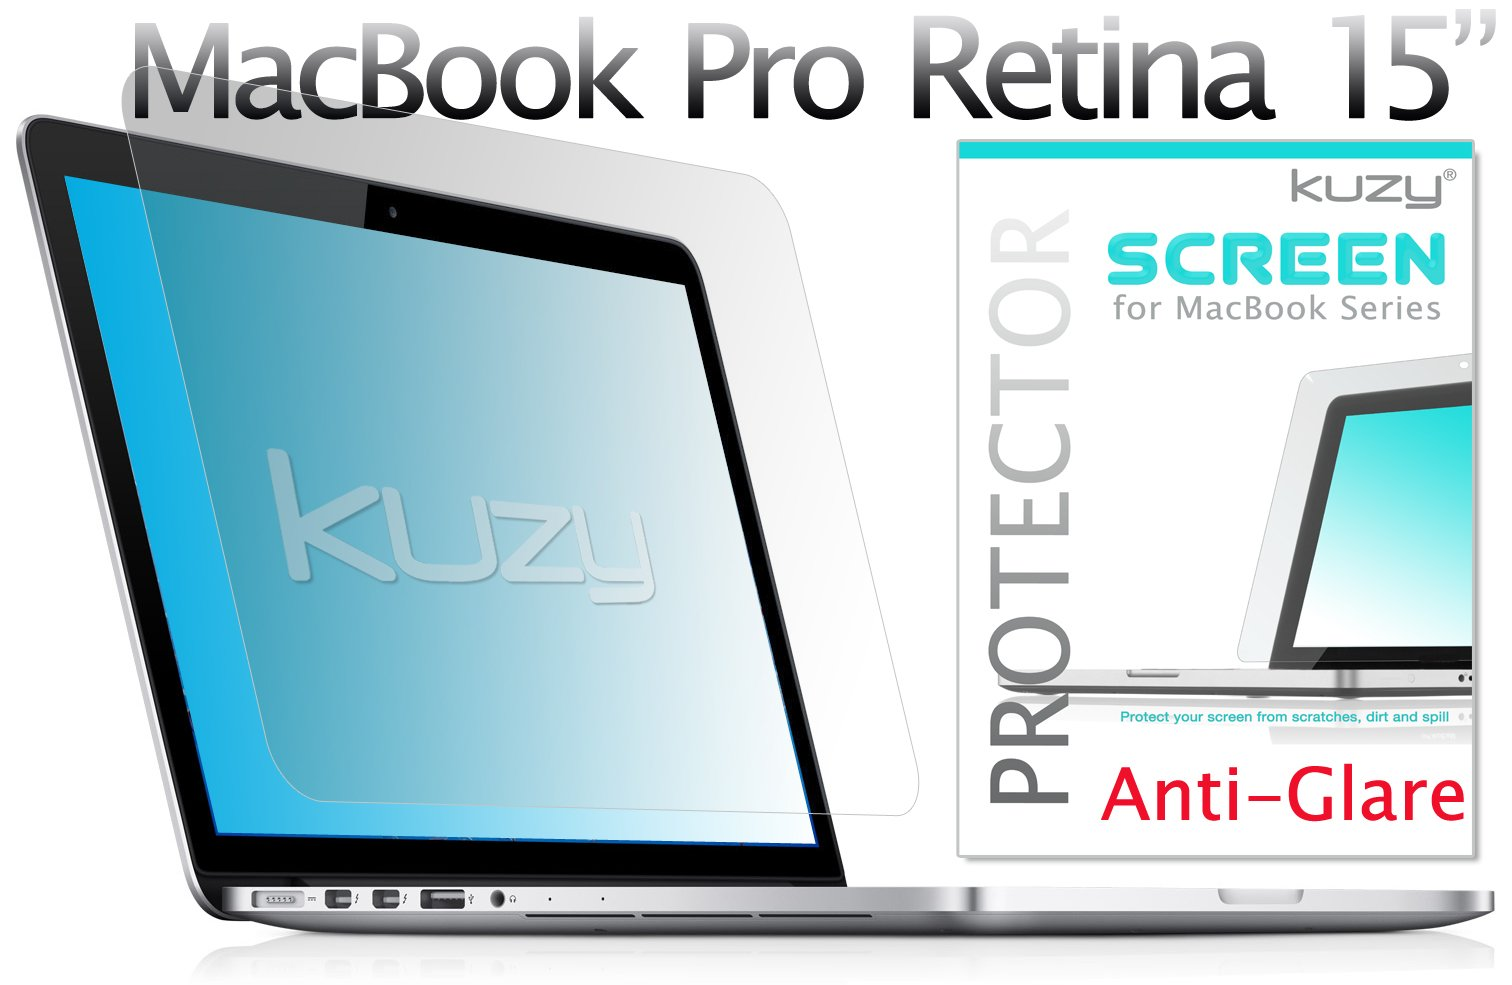 Kuzy - Anti-Glare Retina 15-inch Screen Protector Film for Apple MacBook Pro 15.4'' with Retina Display (Model: A1398) - Anti-Glare